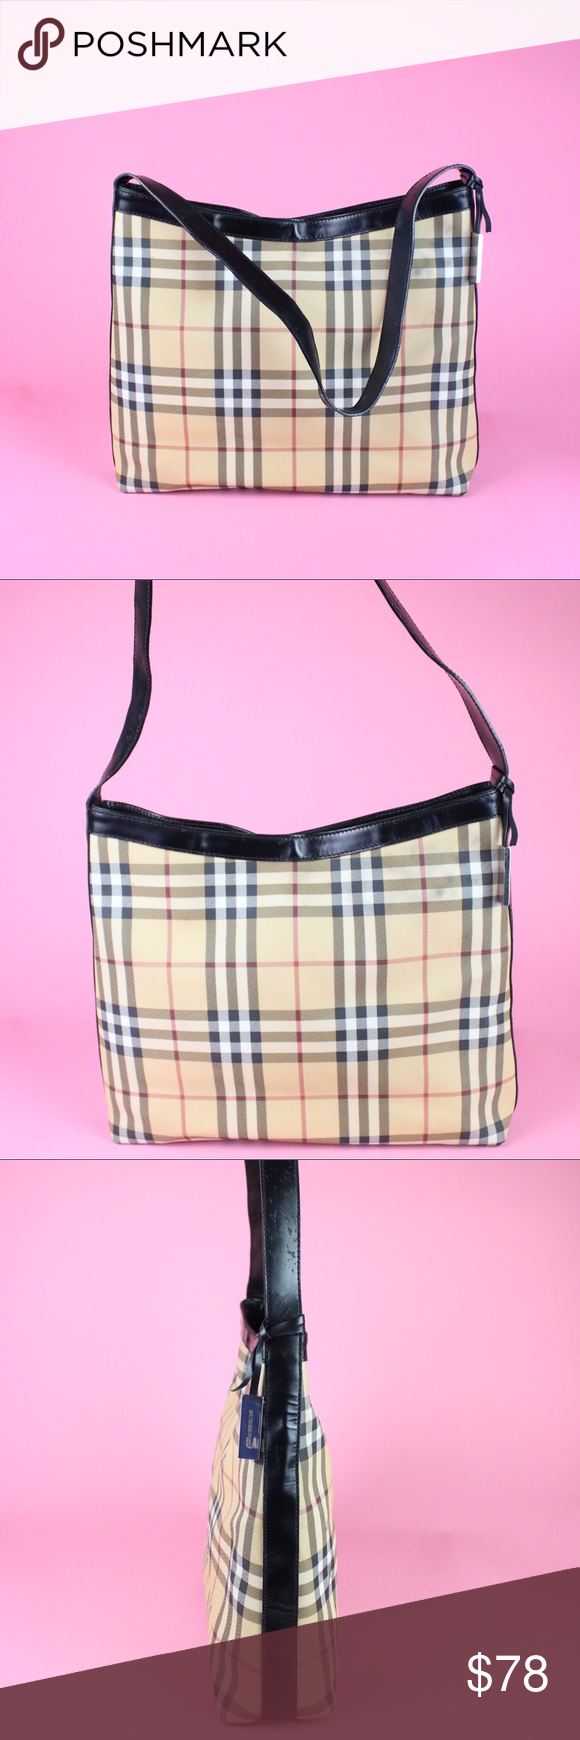 bb9a928c4fb8 Burberry London Shoulder Bag Patterned Plaid Lovely bag! Does have a lot of  staining.